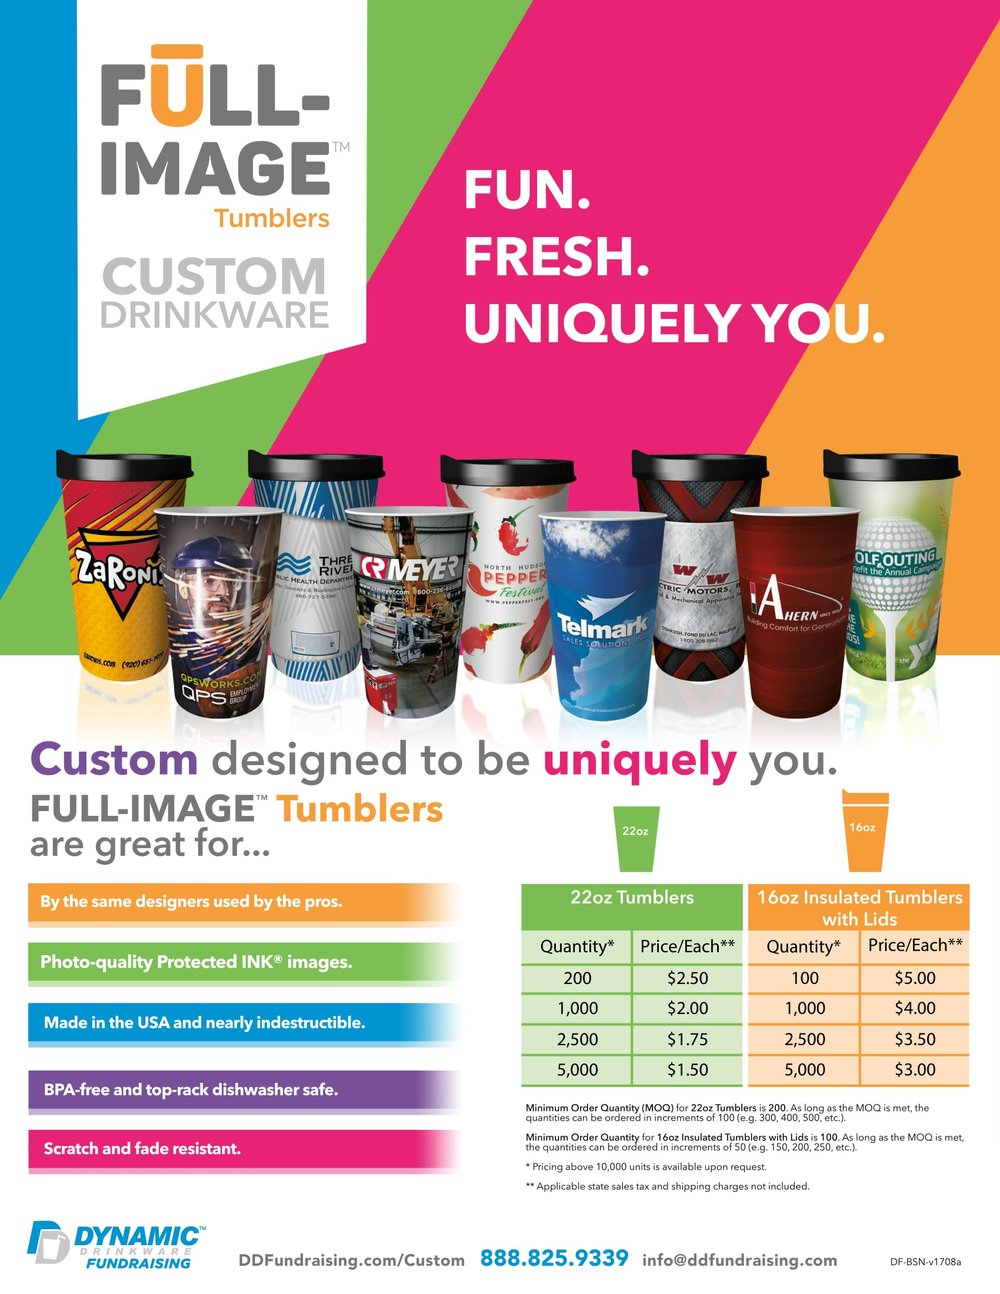 Custom-Drinkware-Business-1.jpg